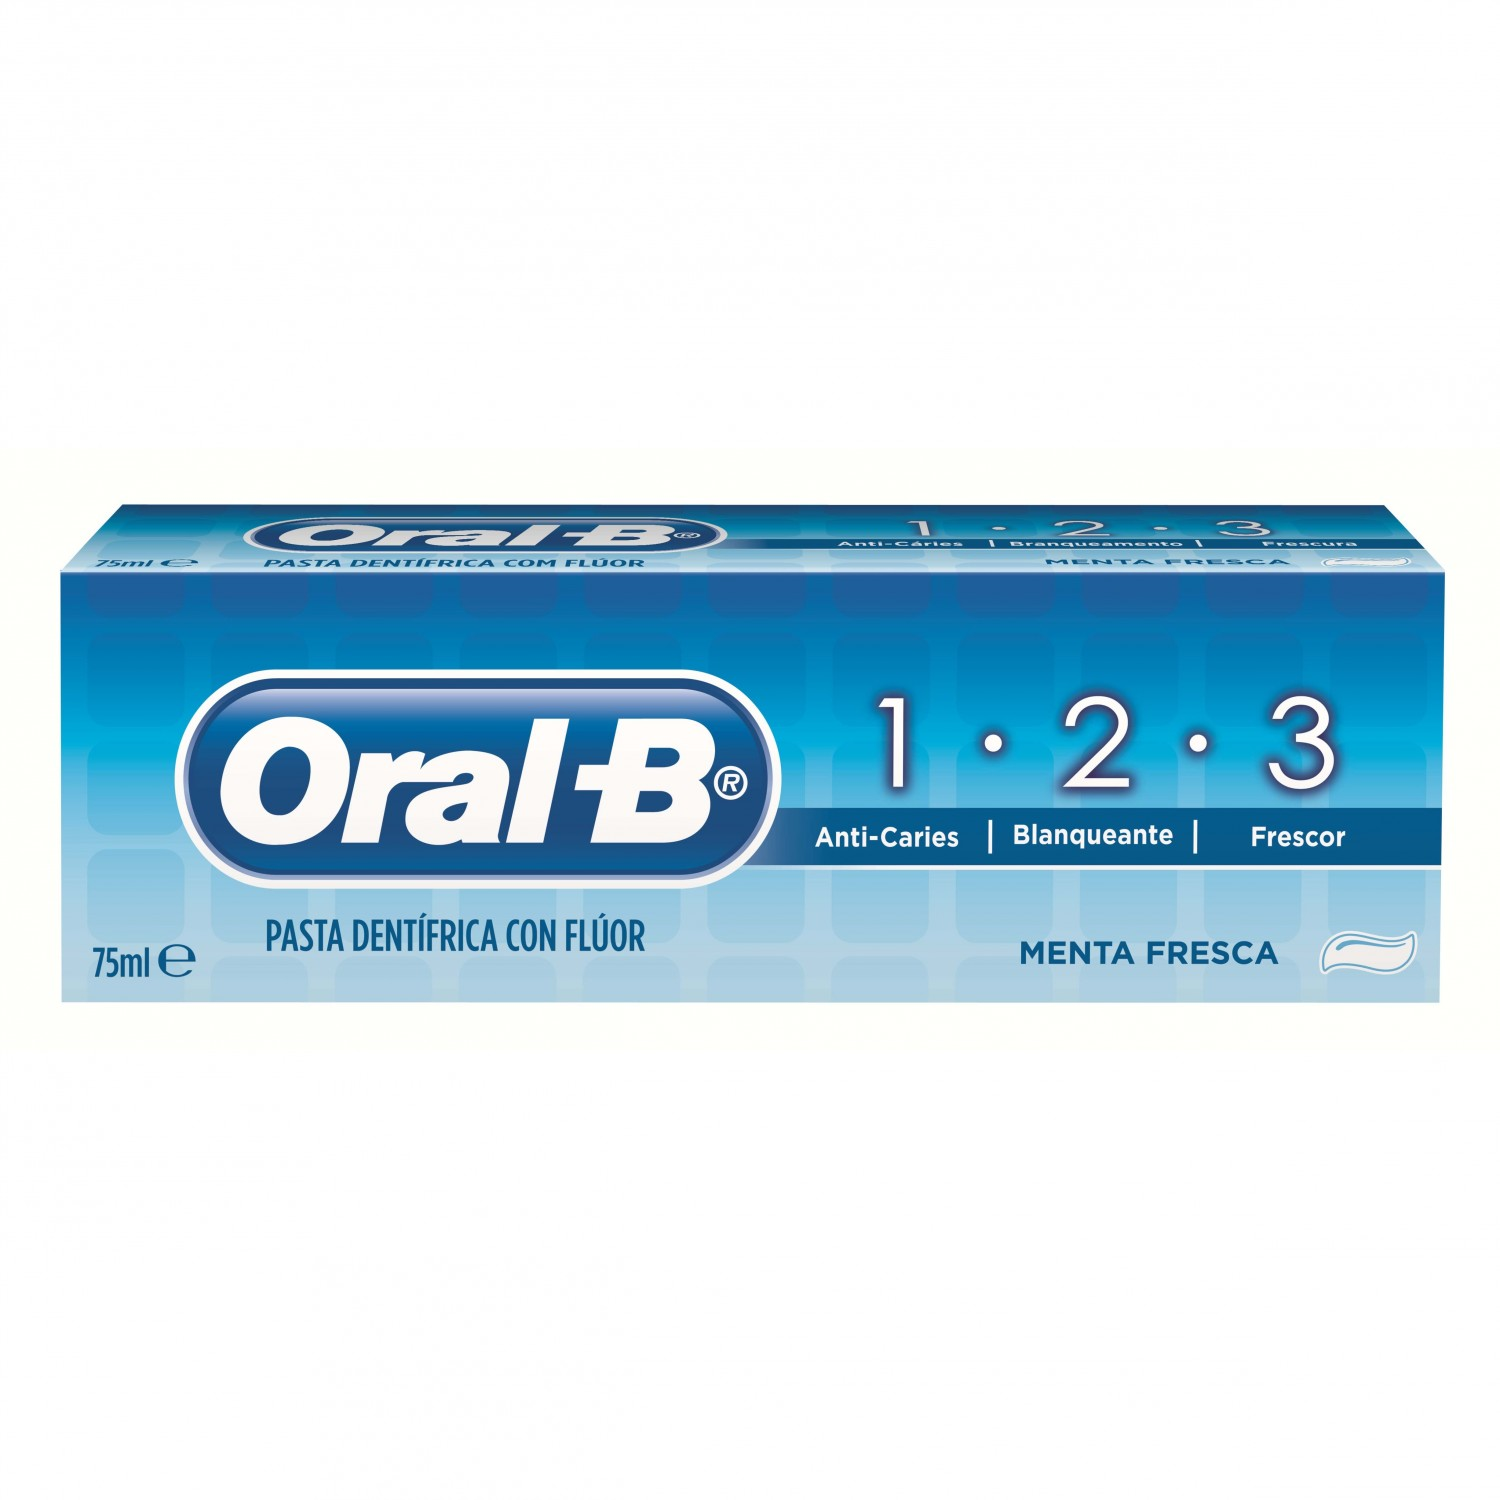 Oral B dental 1 2 3 tubo de 75ml.